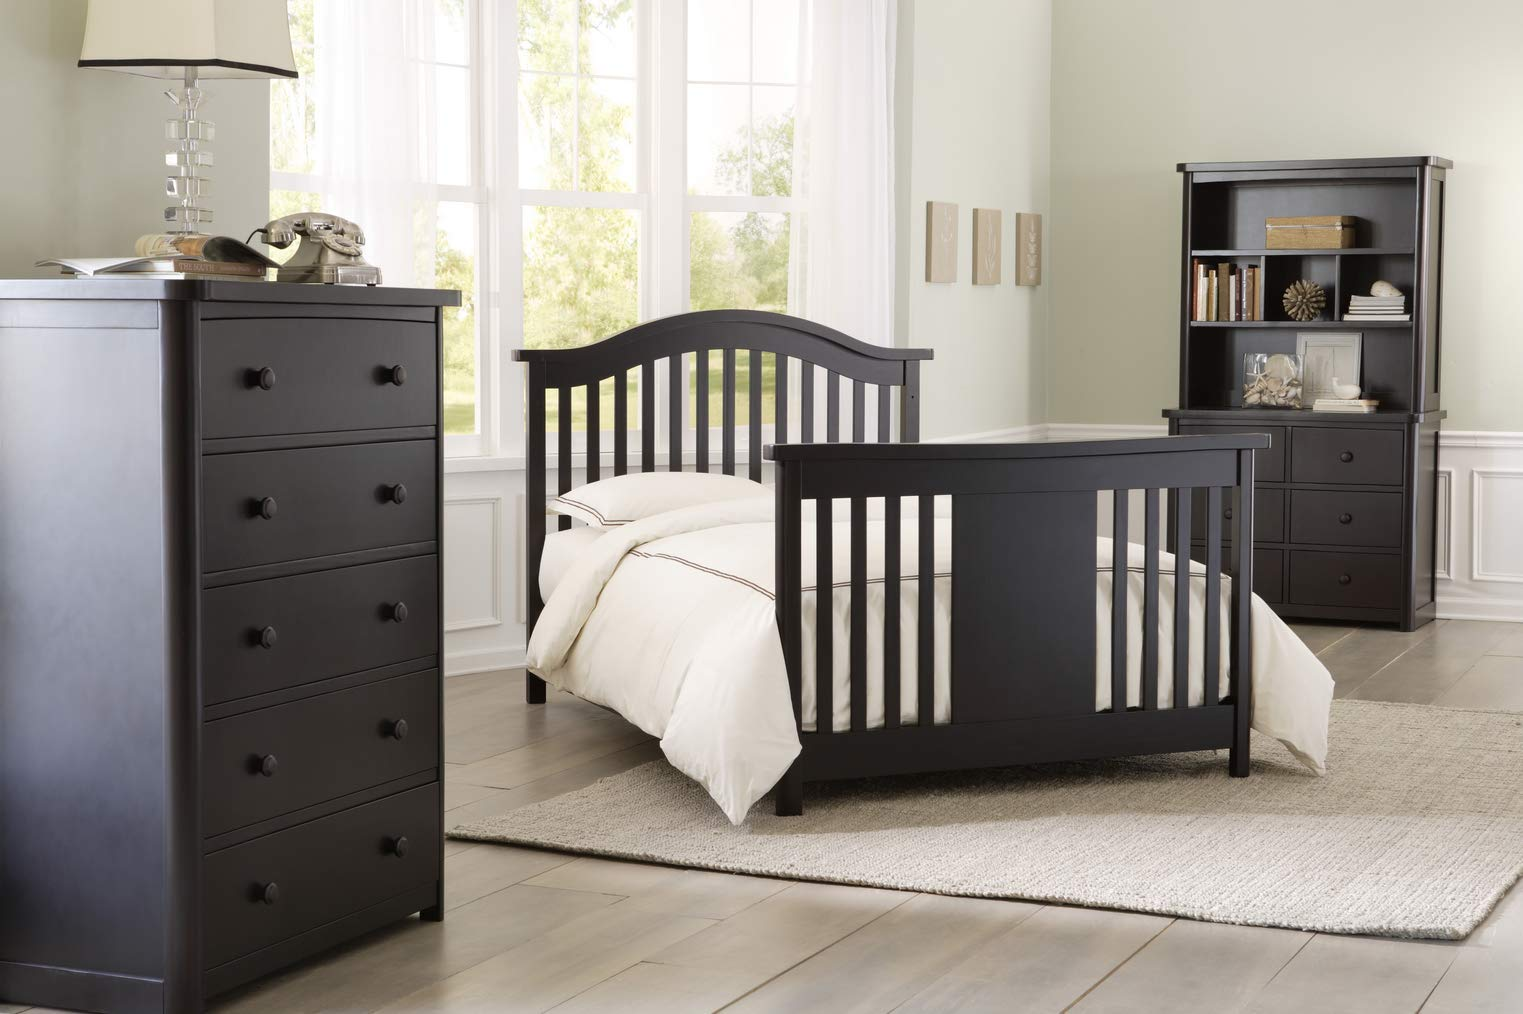 Full Size Conversion Kit Bed Rails for Baby Appleseed Beaumont, Chelmsford, Davenport, Kennedy, Millbury, Stratford Cribs (Espresso) by CC KITS (Image #9)